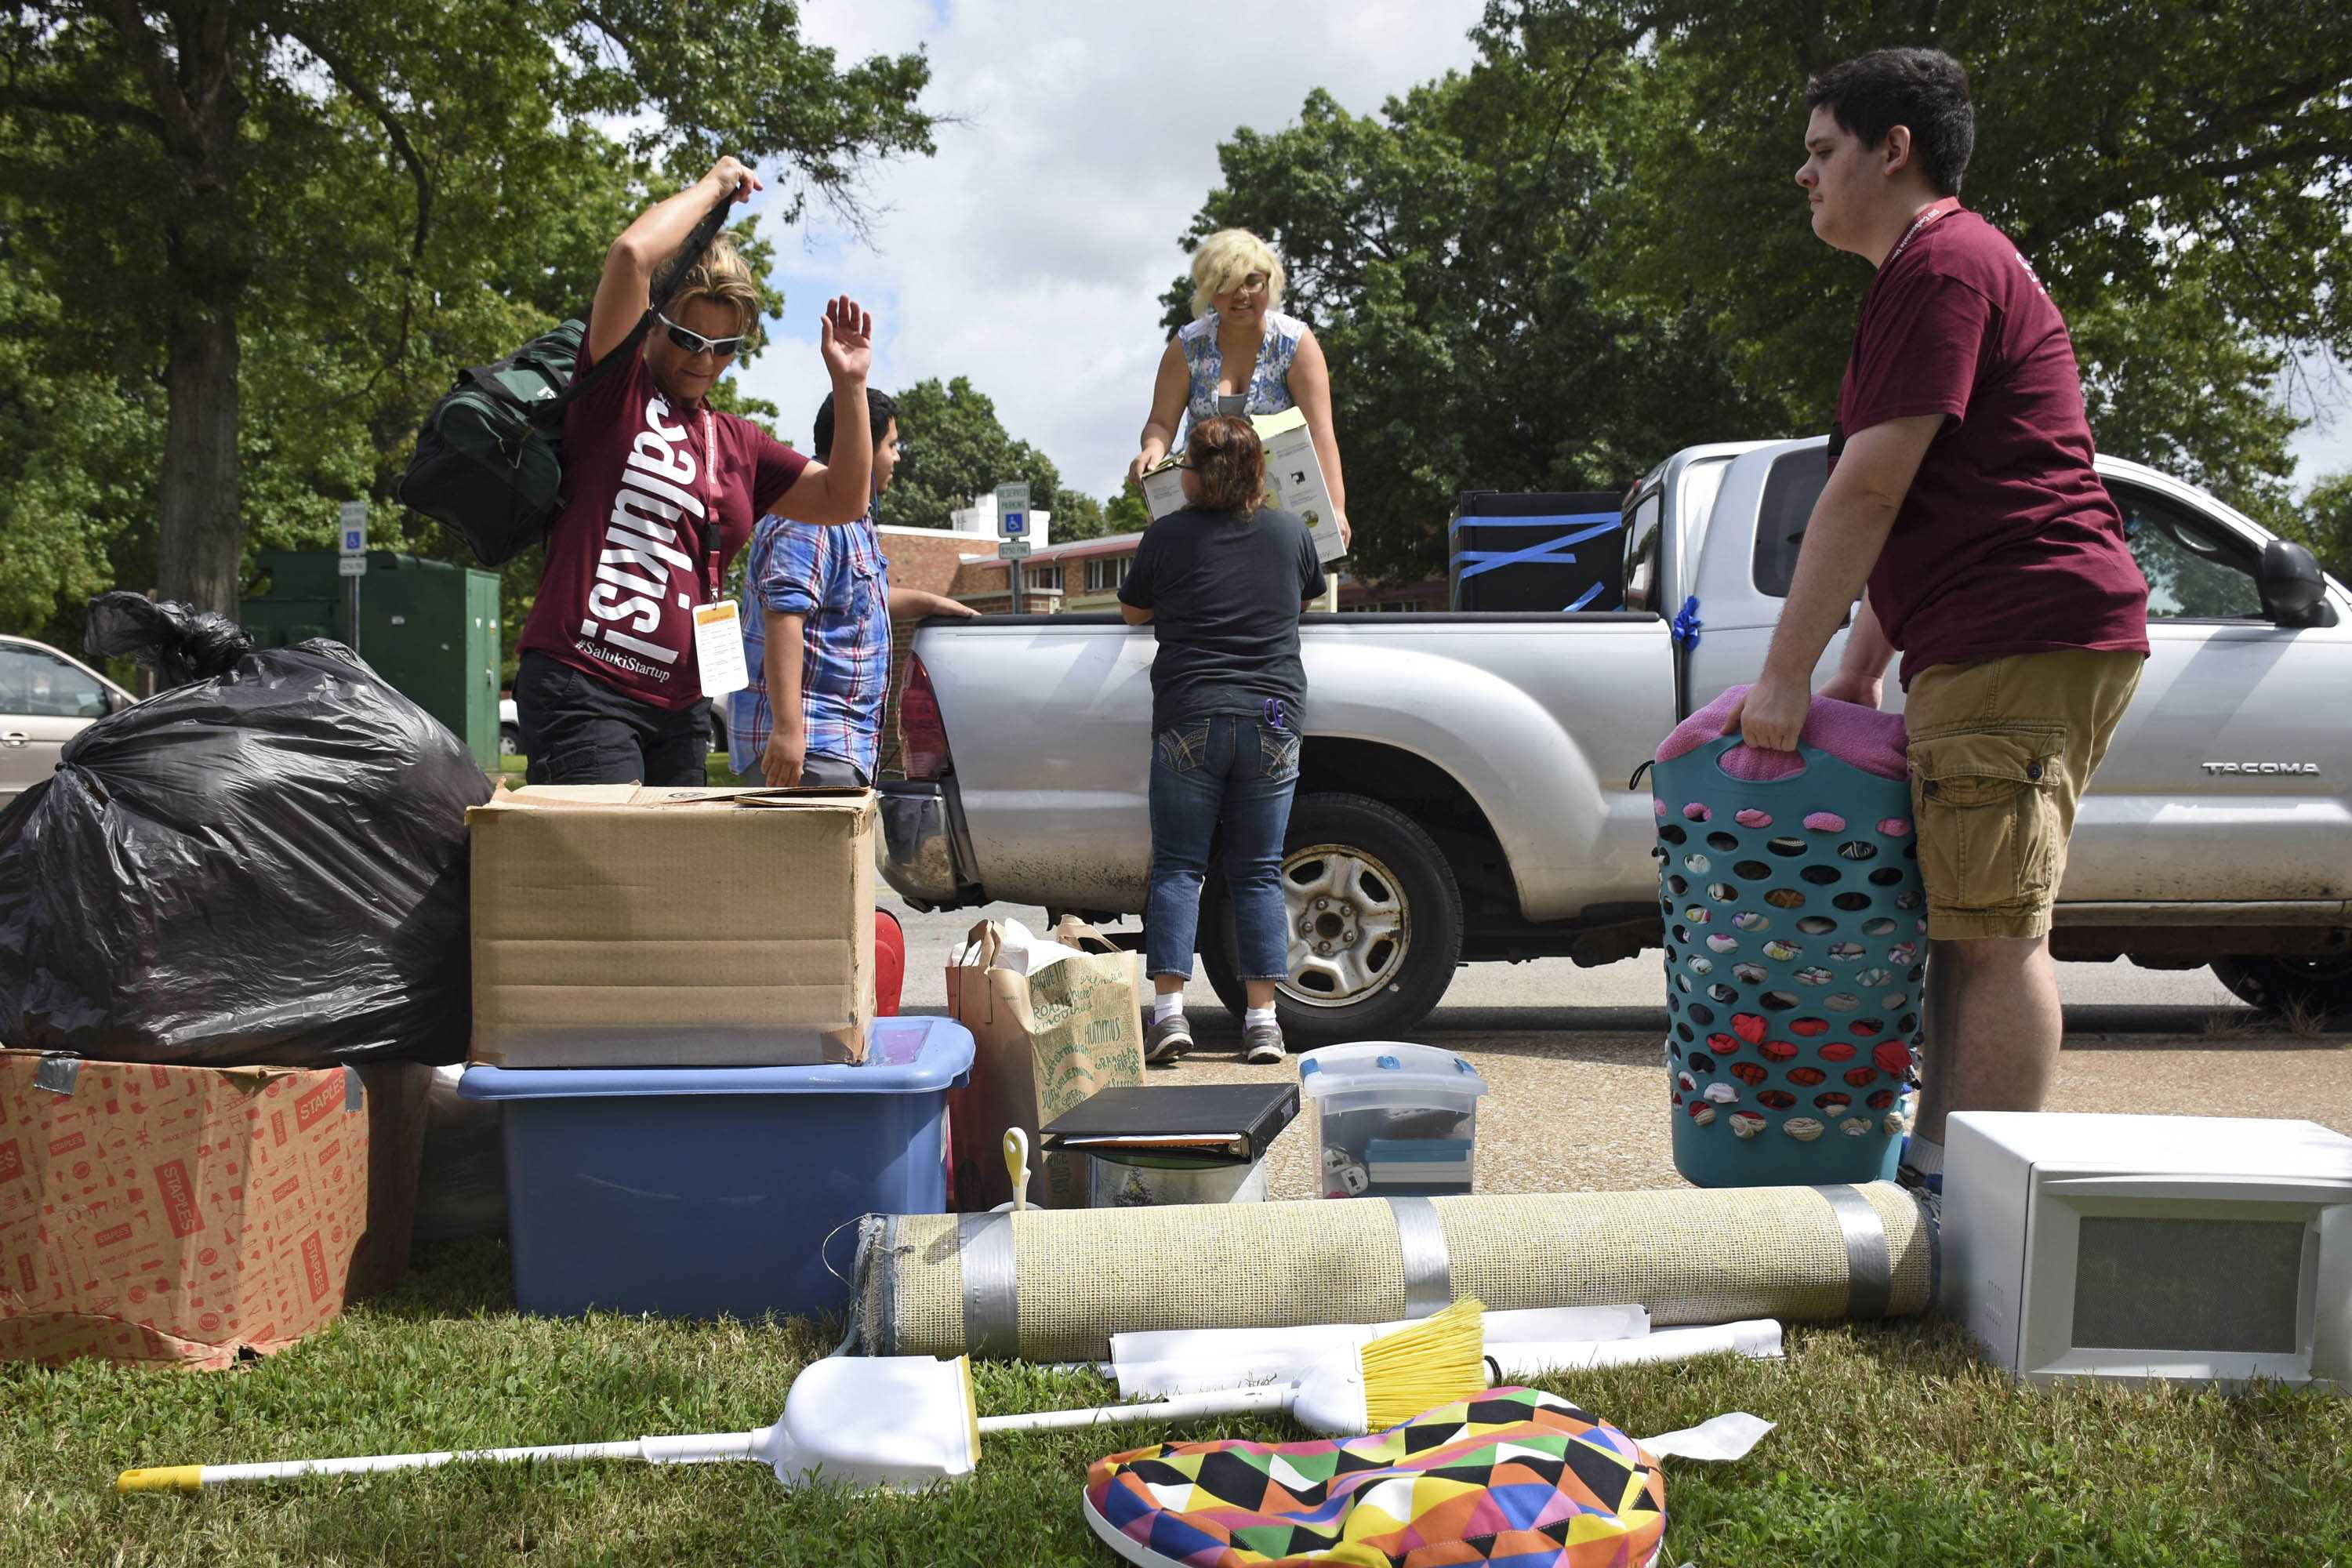 Jacqueline Morales, in truck, a junior studying animation, is assisted by Saluki Startup volunteers as she moves into her dorm Thursday, Aug. 18, 2016, outside Kellogg Hall. This is Jacqueline's third year living in the residence halls. (Athena Chrysanthou | DailyEgyptian.com)